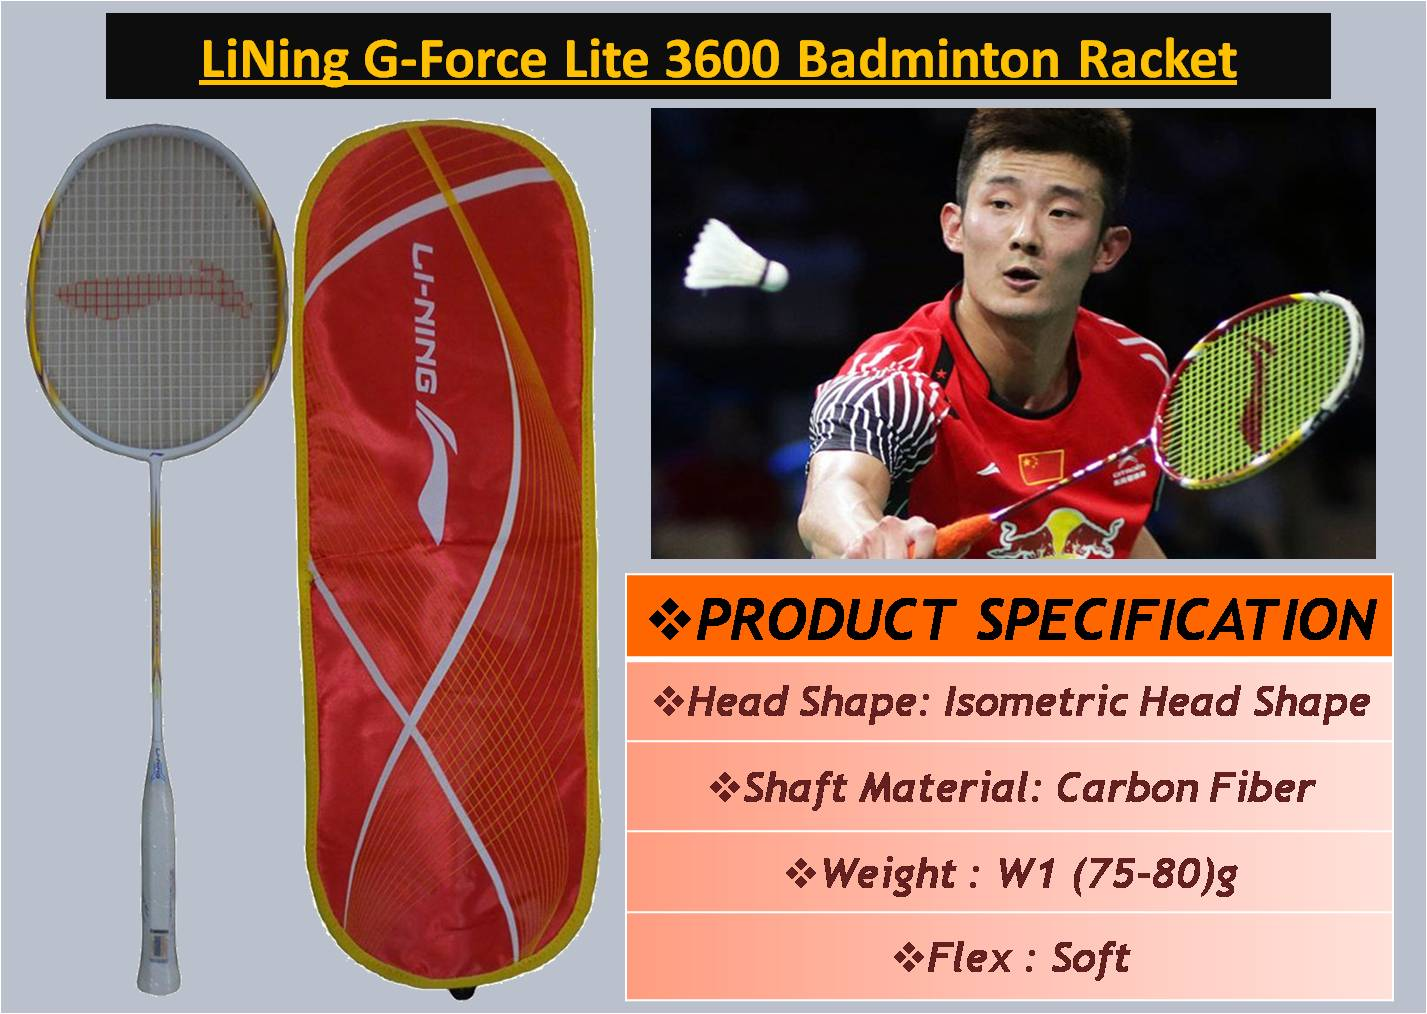 LiNing G-Force Lite 3600 Badminton Racket